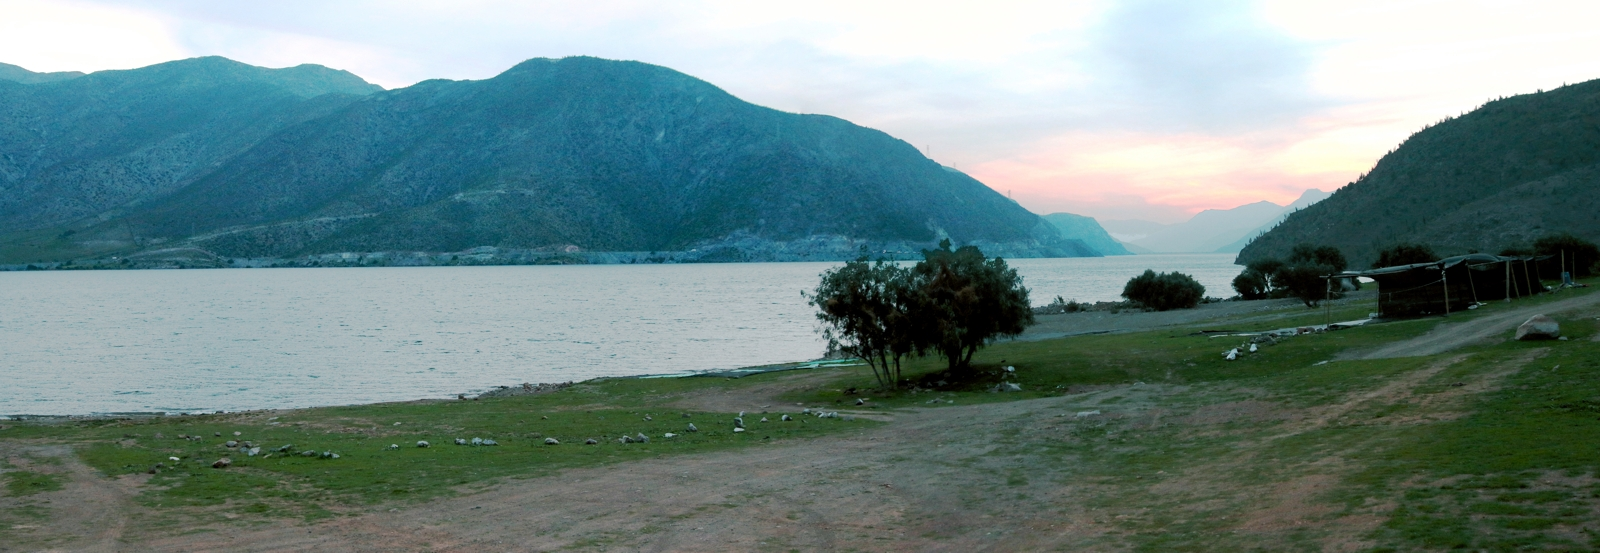 View across the Puclaro Reservoir.